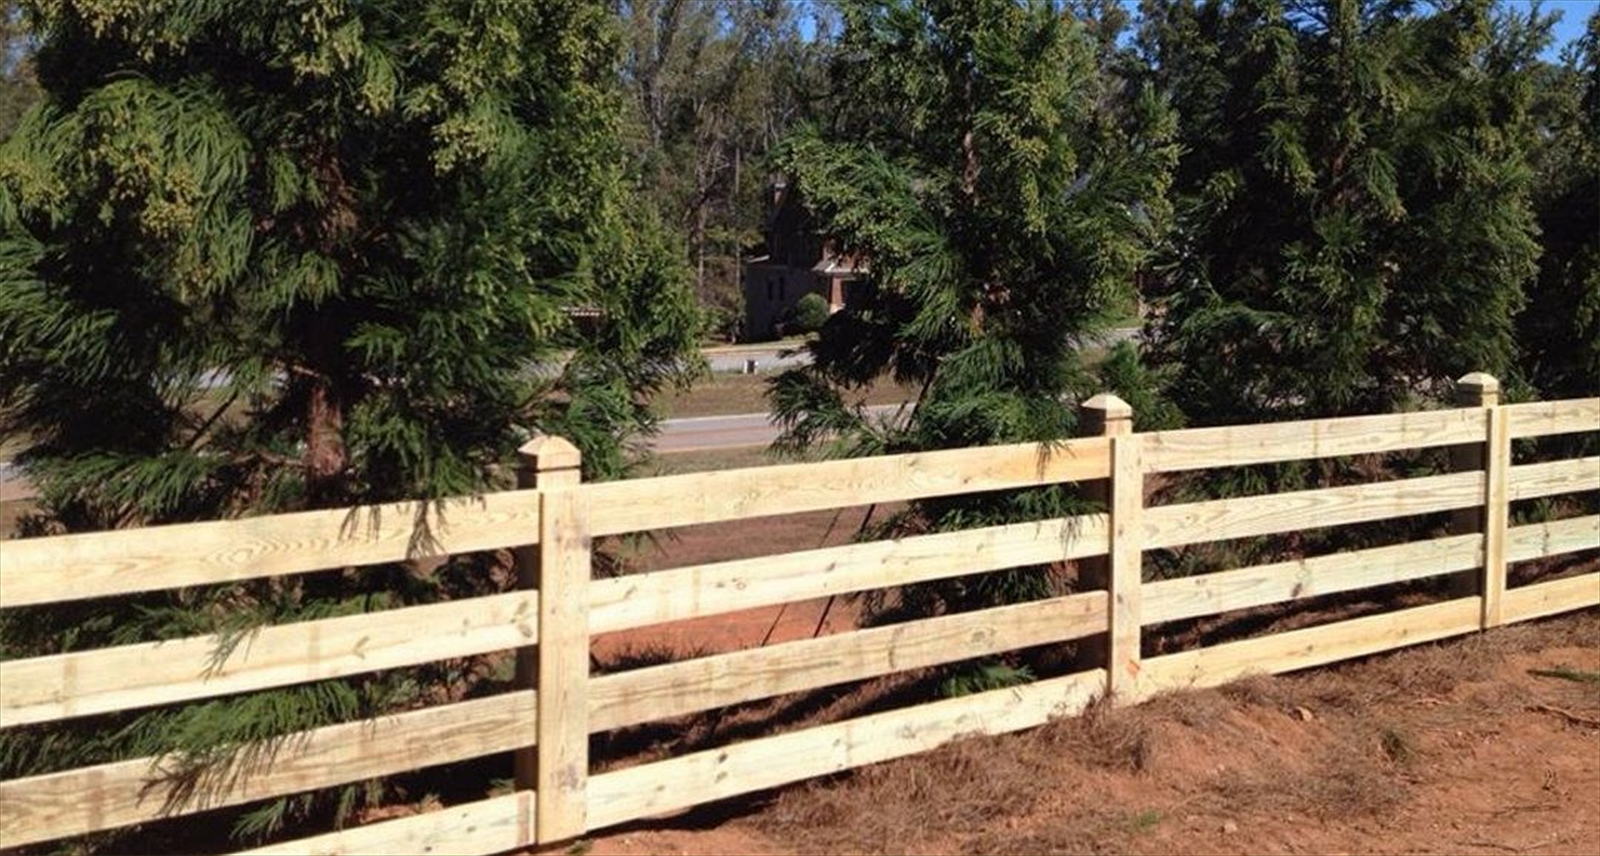 Akridge Fence: Wood Fencing | Farm Fencing | Horse Fencing | Welded ...